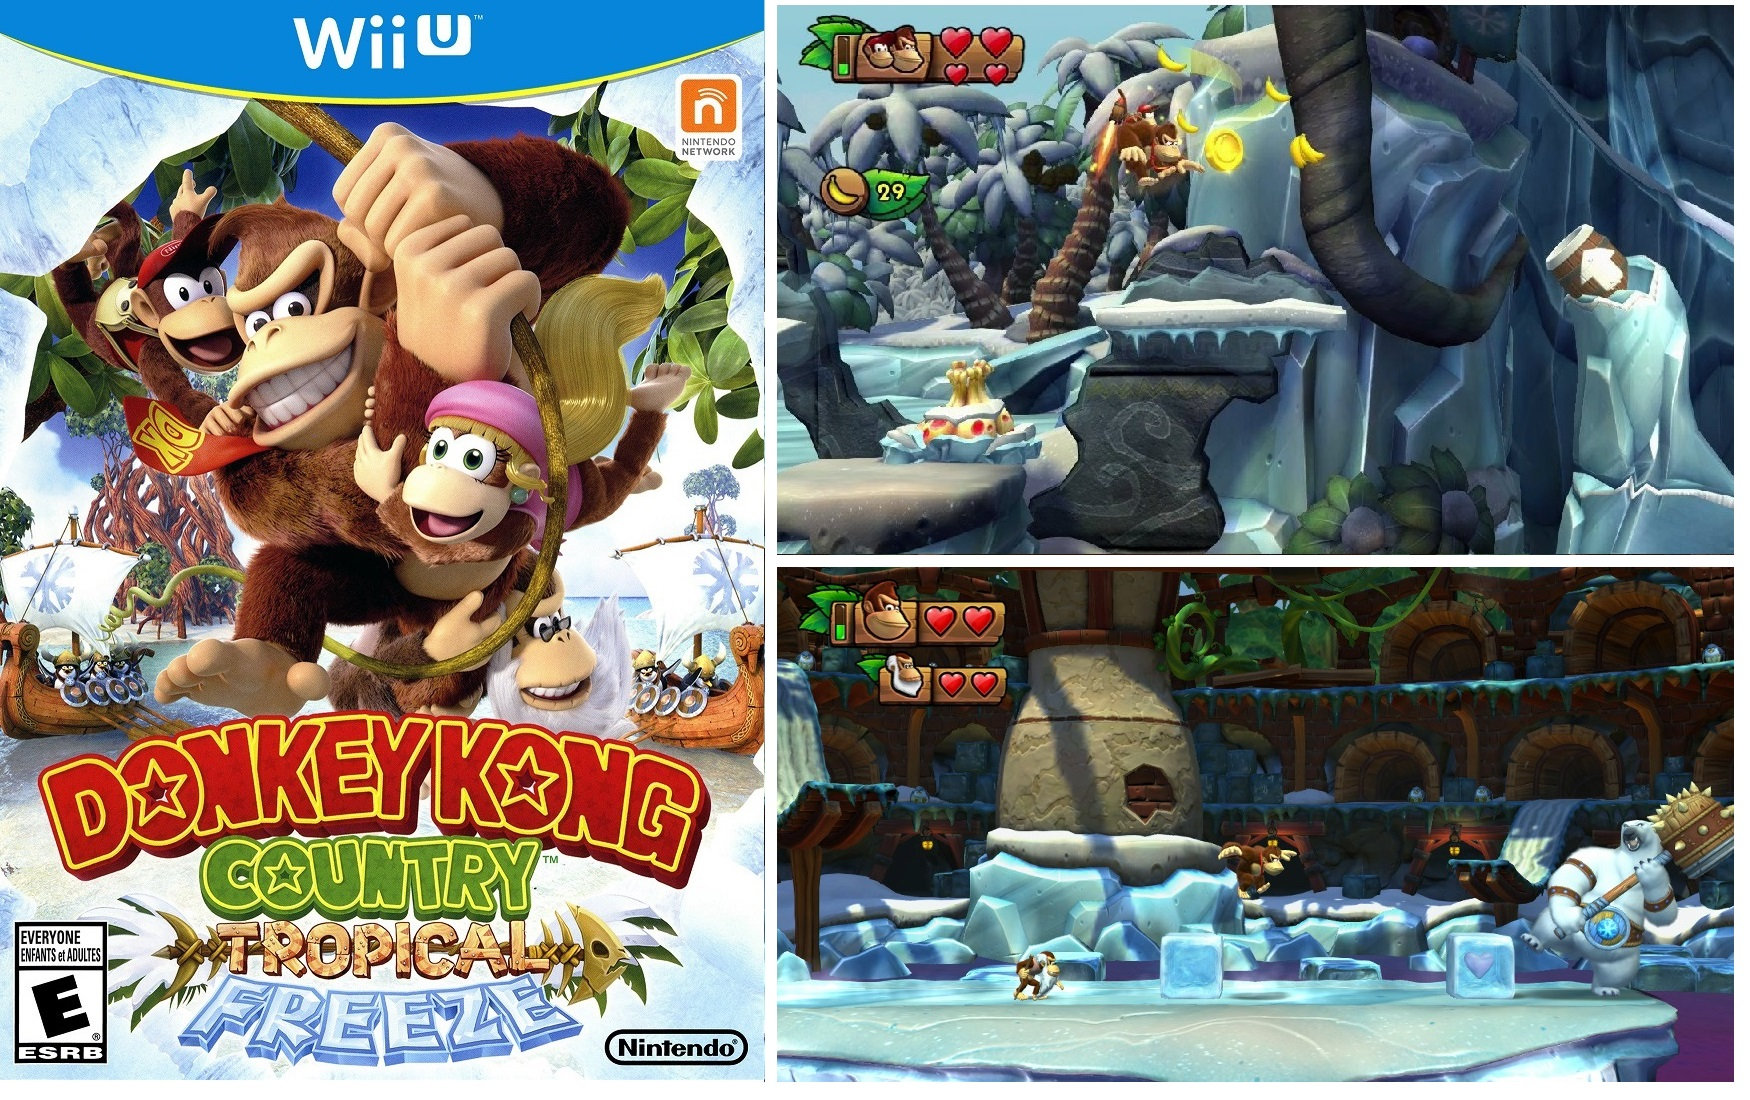 Donkey Kong Country Tropical Freeze (2)